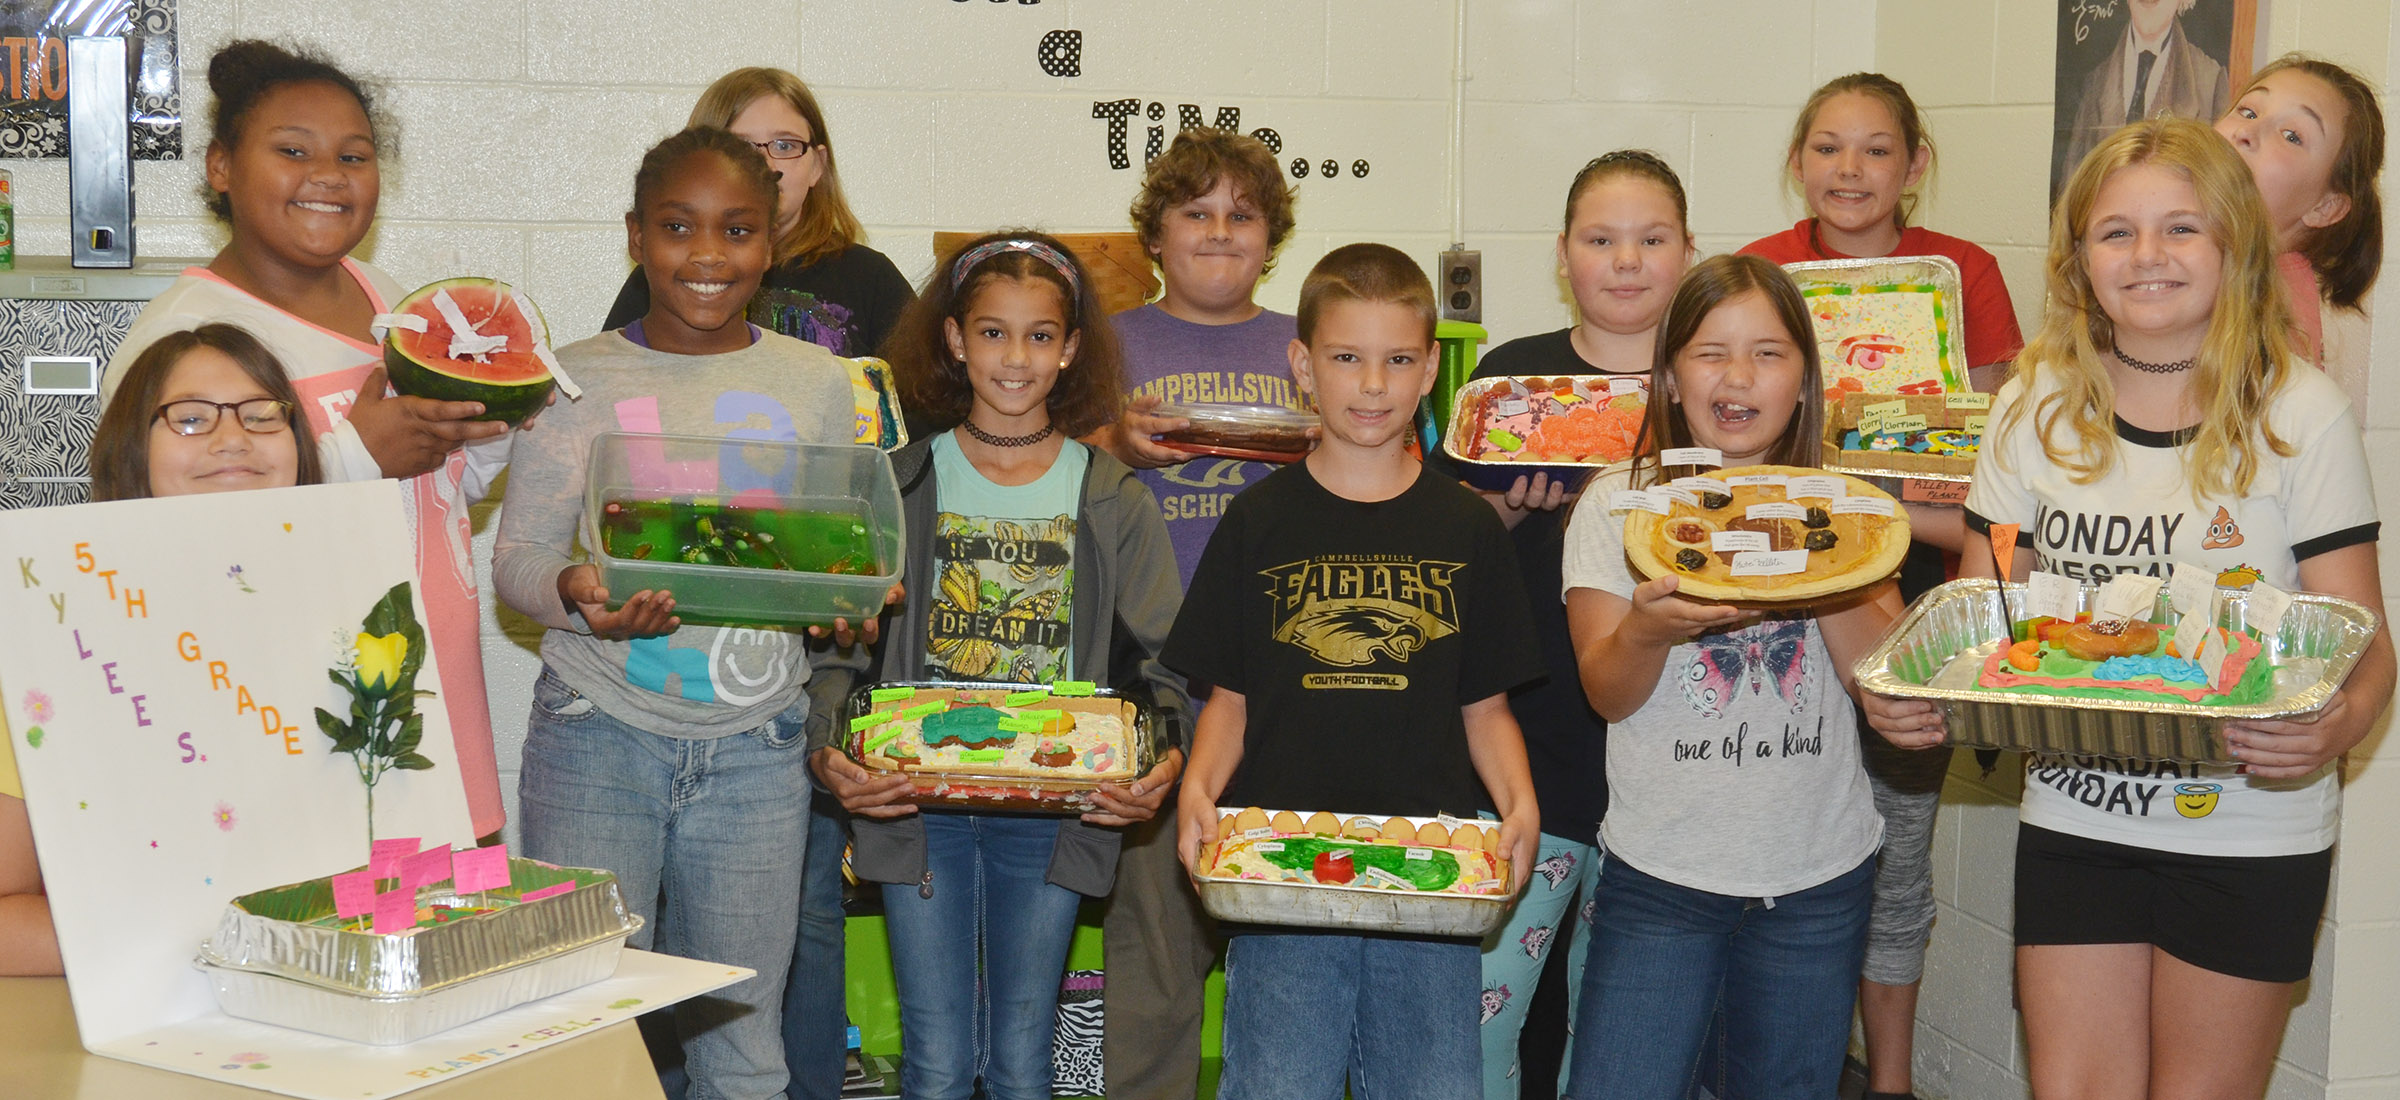 CMS fifth-grade science students hold their edible cells. From left, front, are fifth-graders Kylee Sowders, Ta'Zaria Owens, Mackenzie Negron, Taylan Hunt, Kate Billeter and Dakota Broyles. Back, Dezarae Washington, Destiny Lane, Zeke Harris, Averi Perkins, Piper Maggard and Riley Newton.